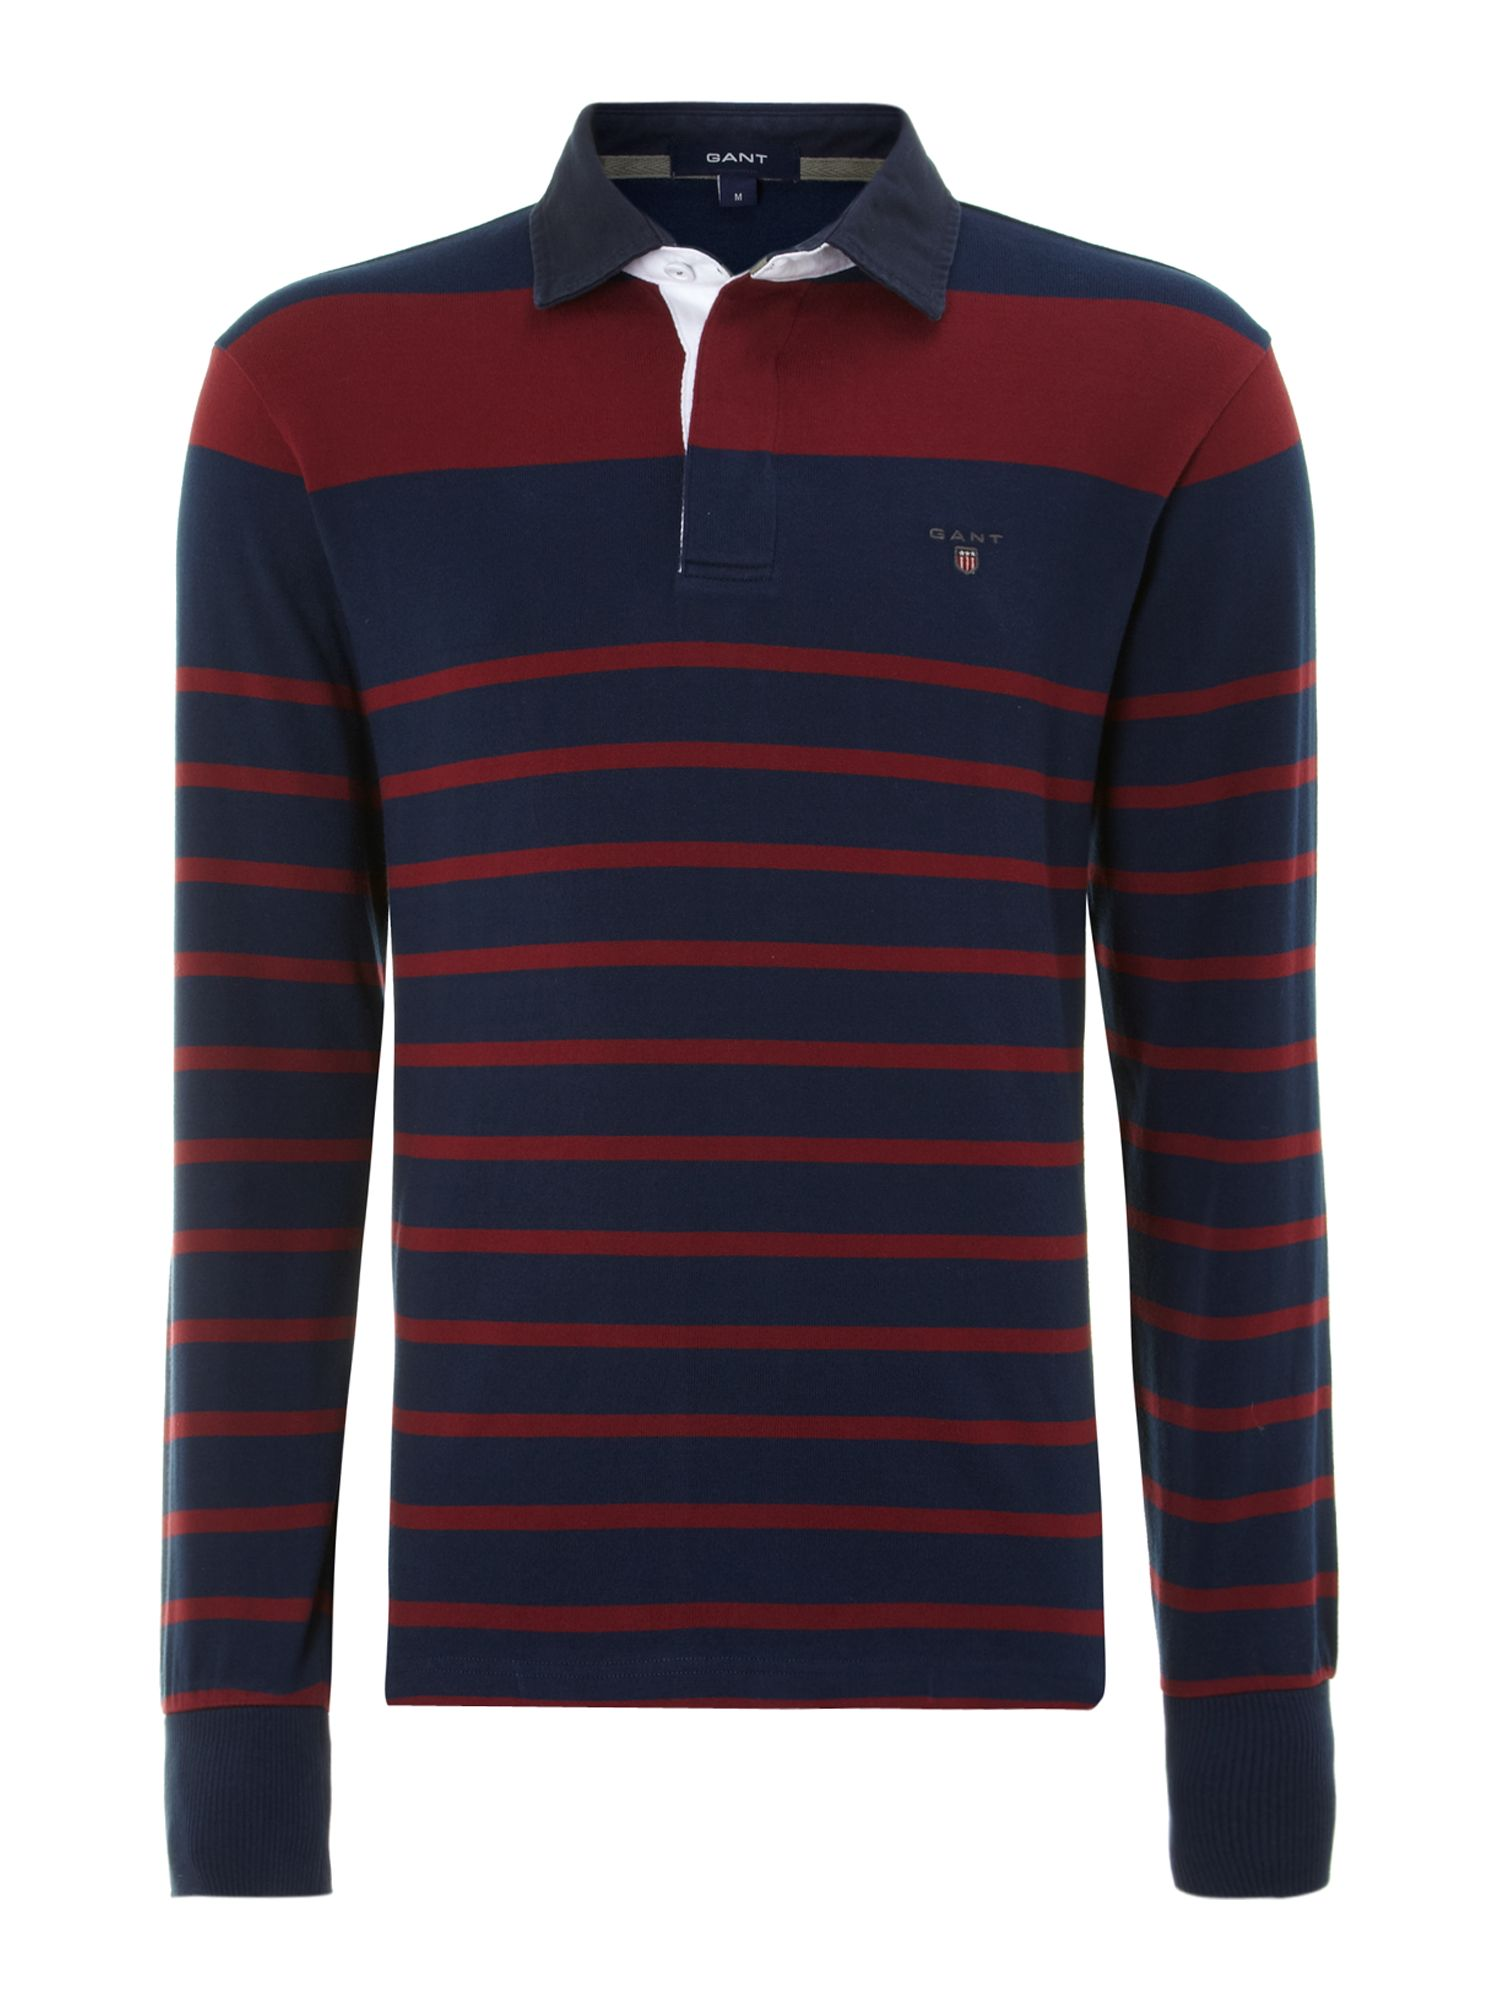 Long sleeve striped rugby top